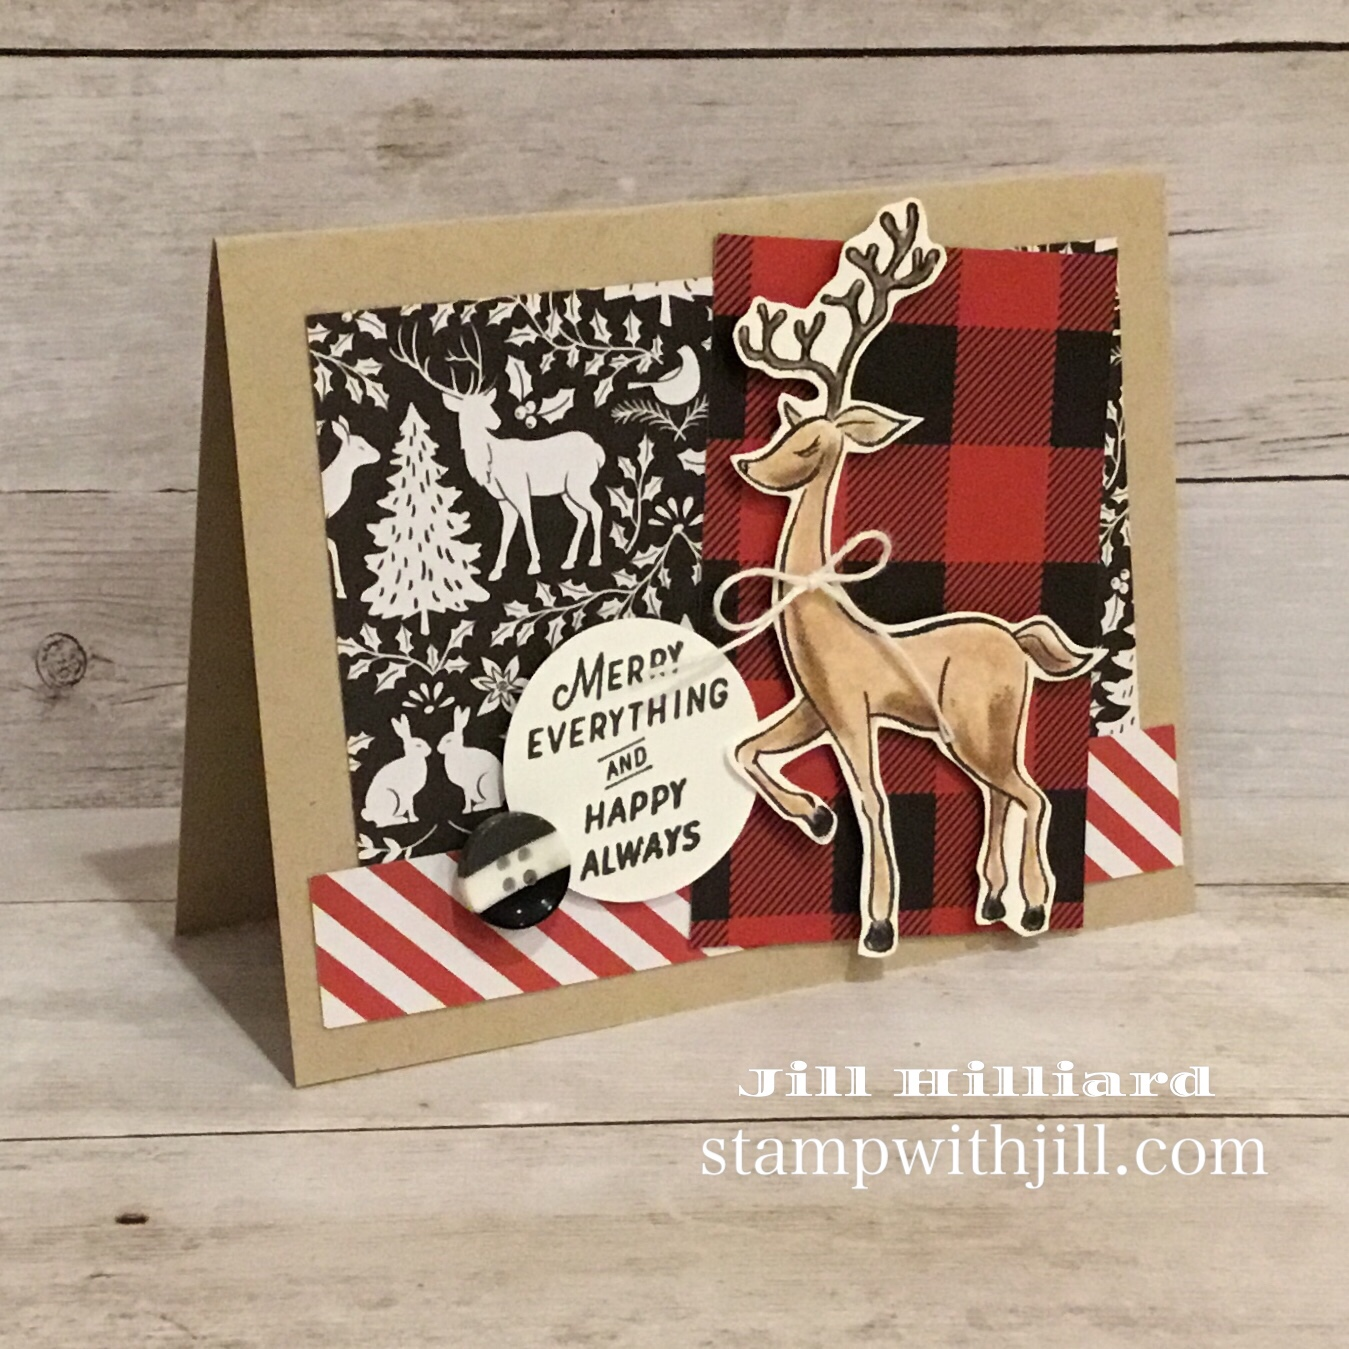 make beautiful Christmas cards